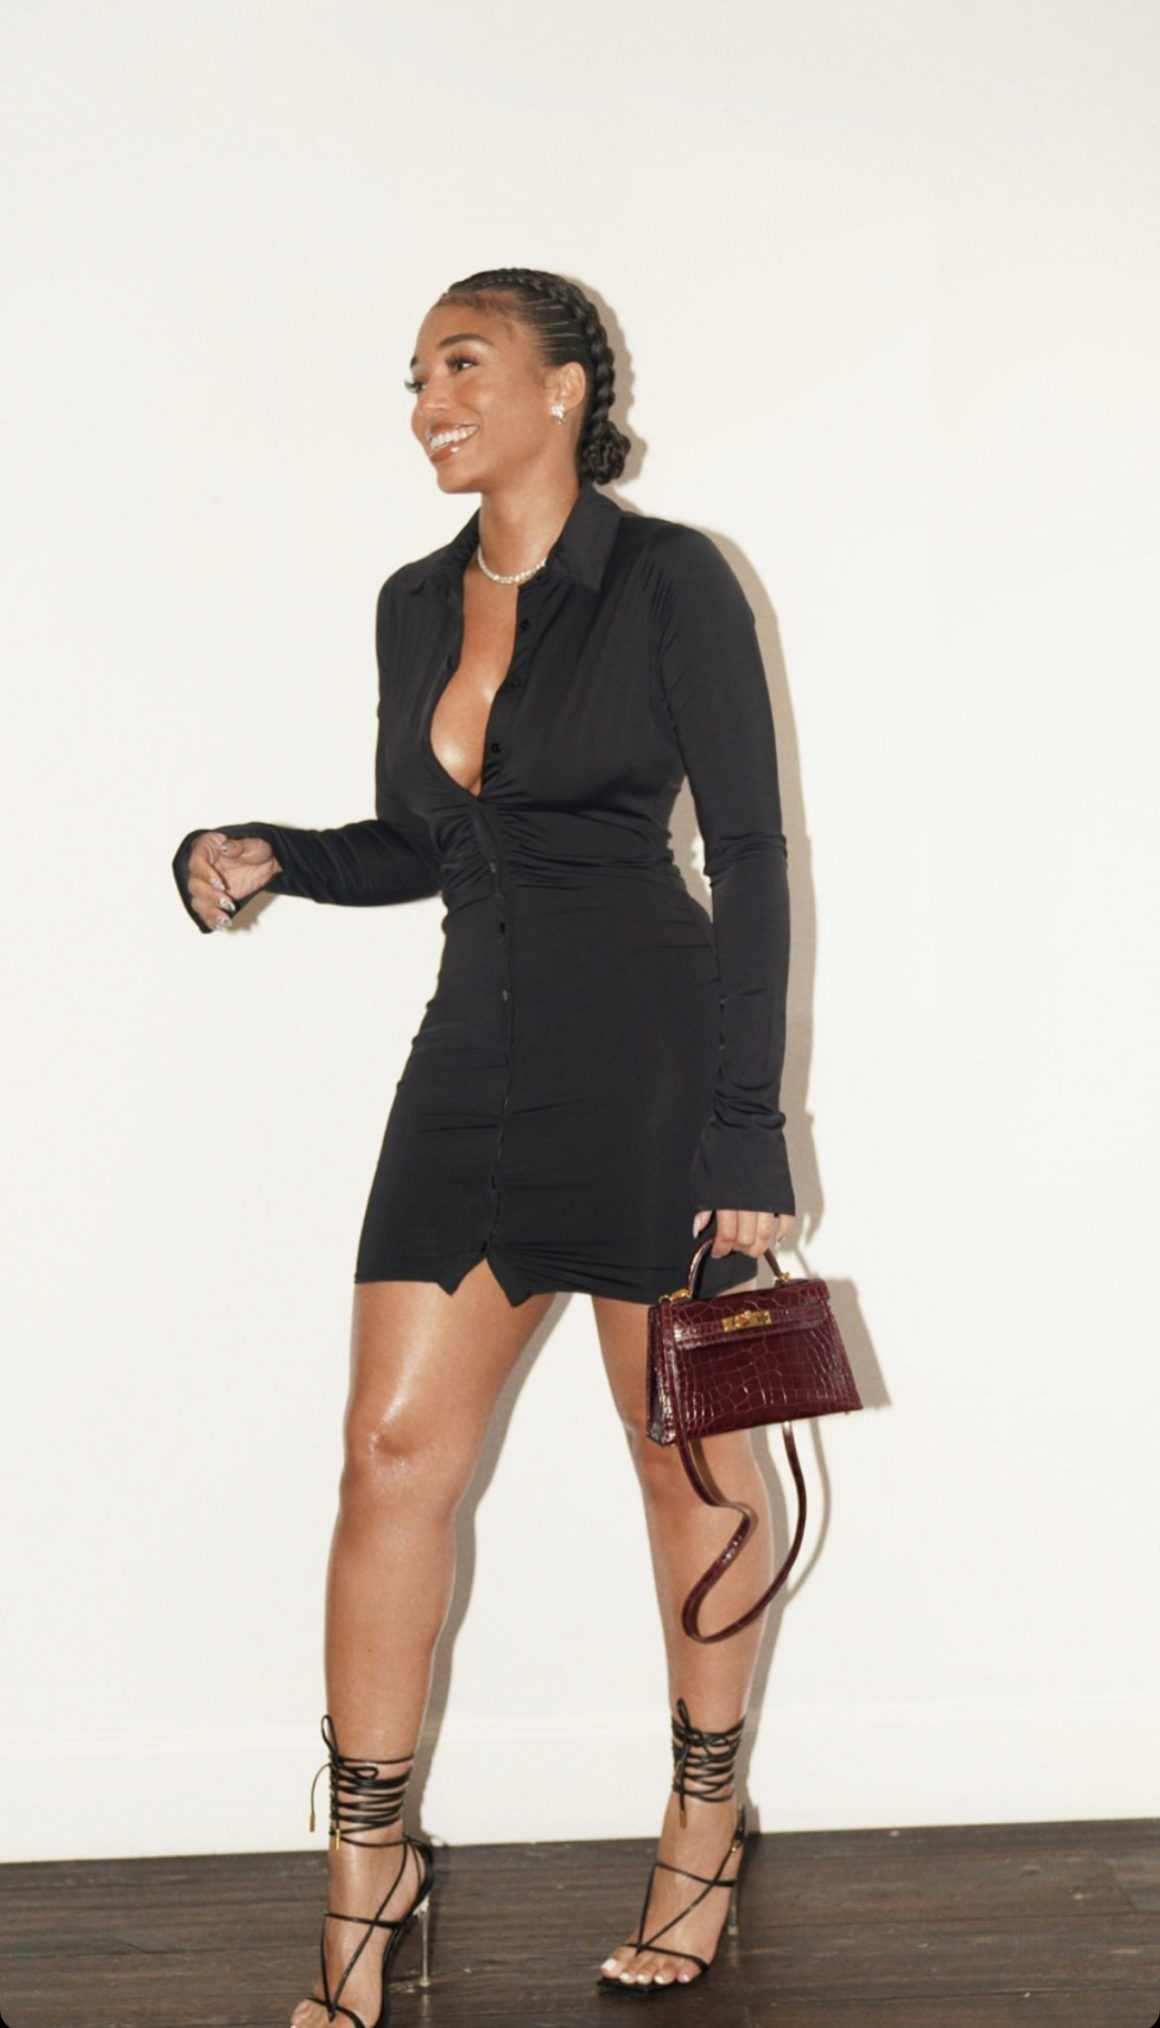 Lori Harvey Flashes Her Smile Wearing With Jean Black Ruched Button Shirt Dress Paired With Hermès Burgundy Croc Handbag and Versace Black Lace-Up Sandals